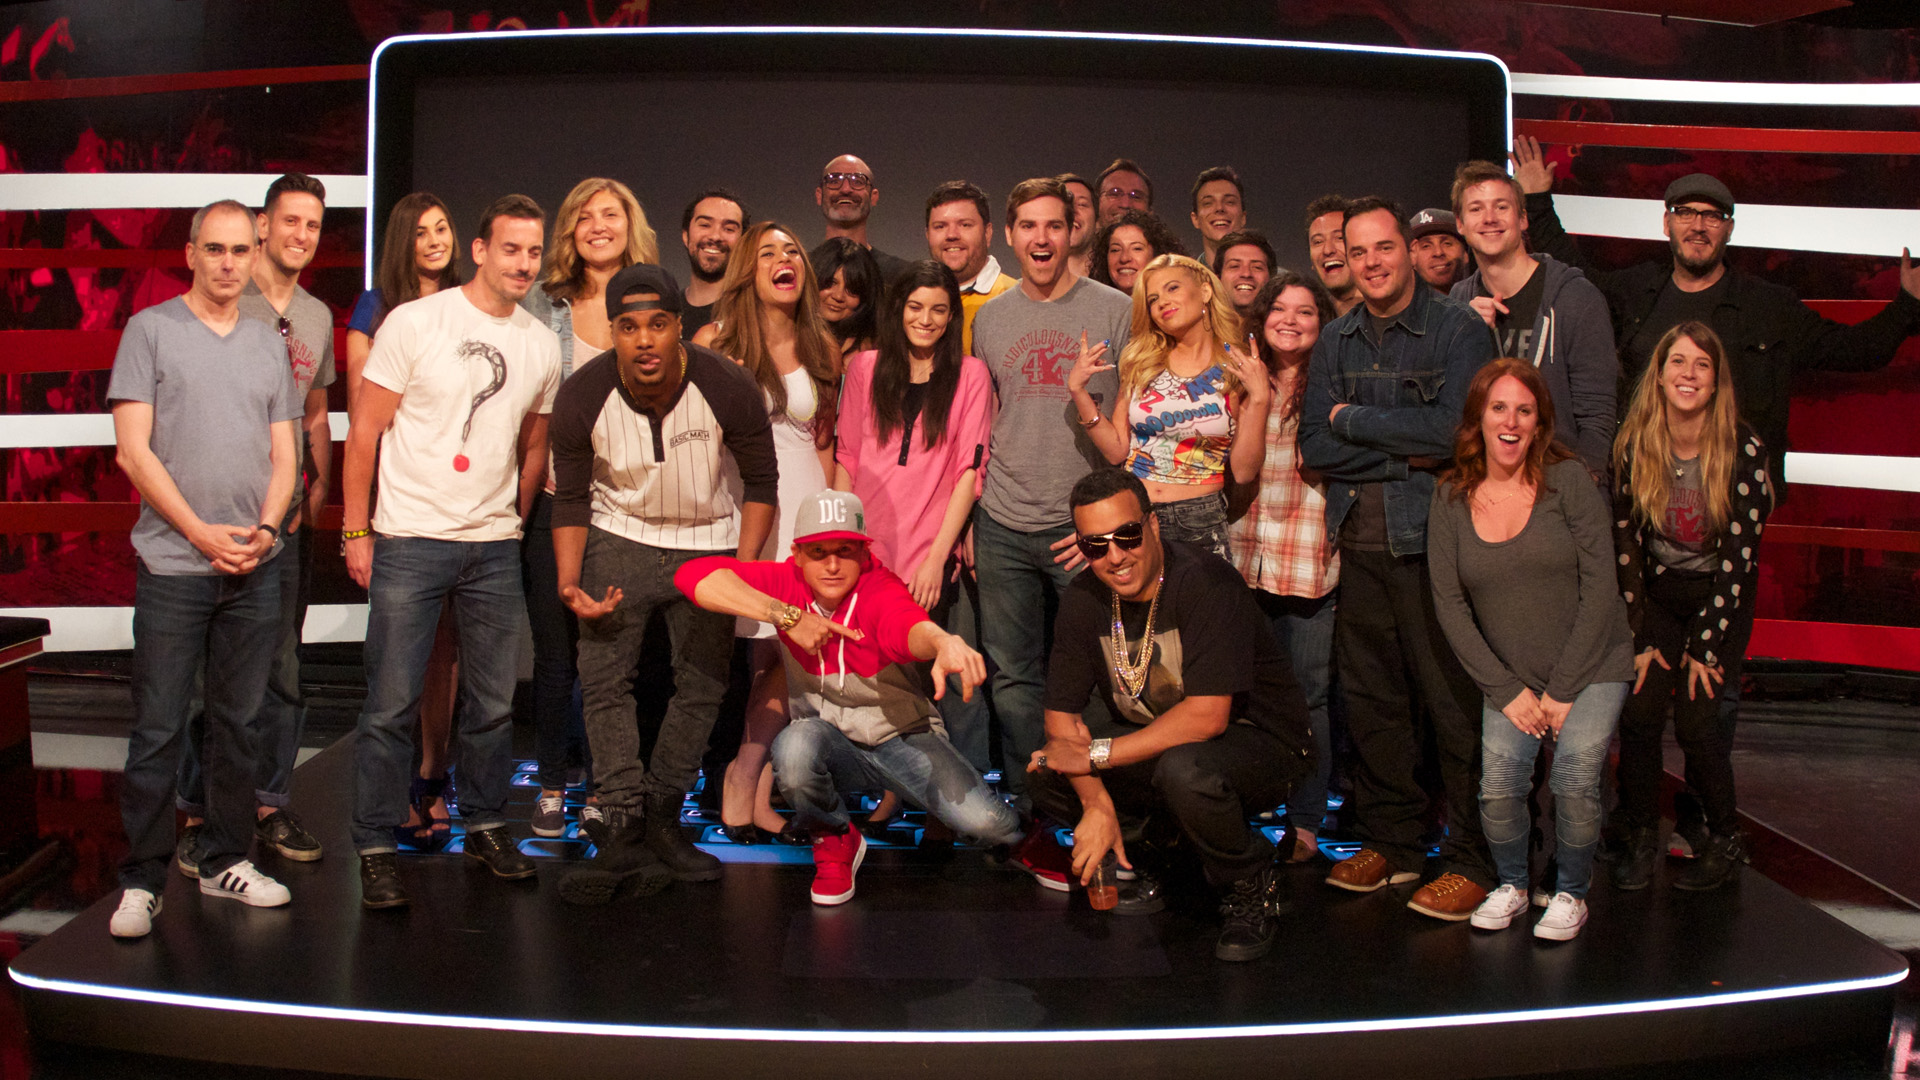 Chanel West Coast Ridiculousness Larry King